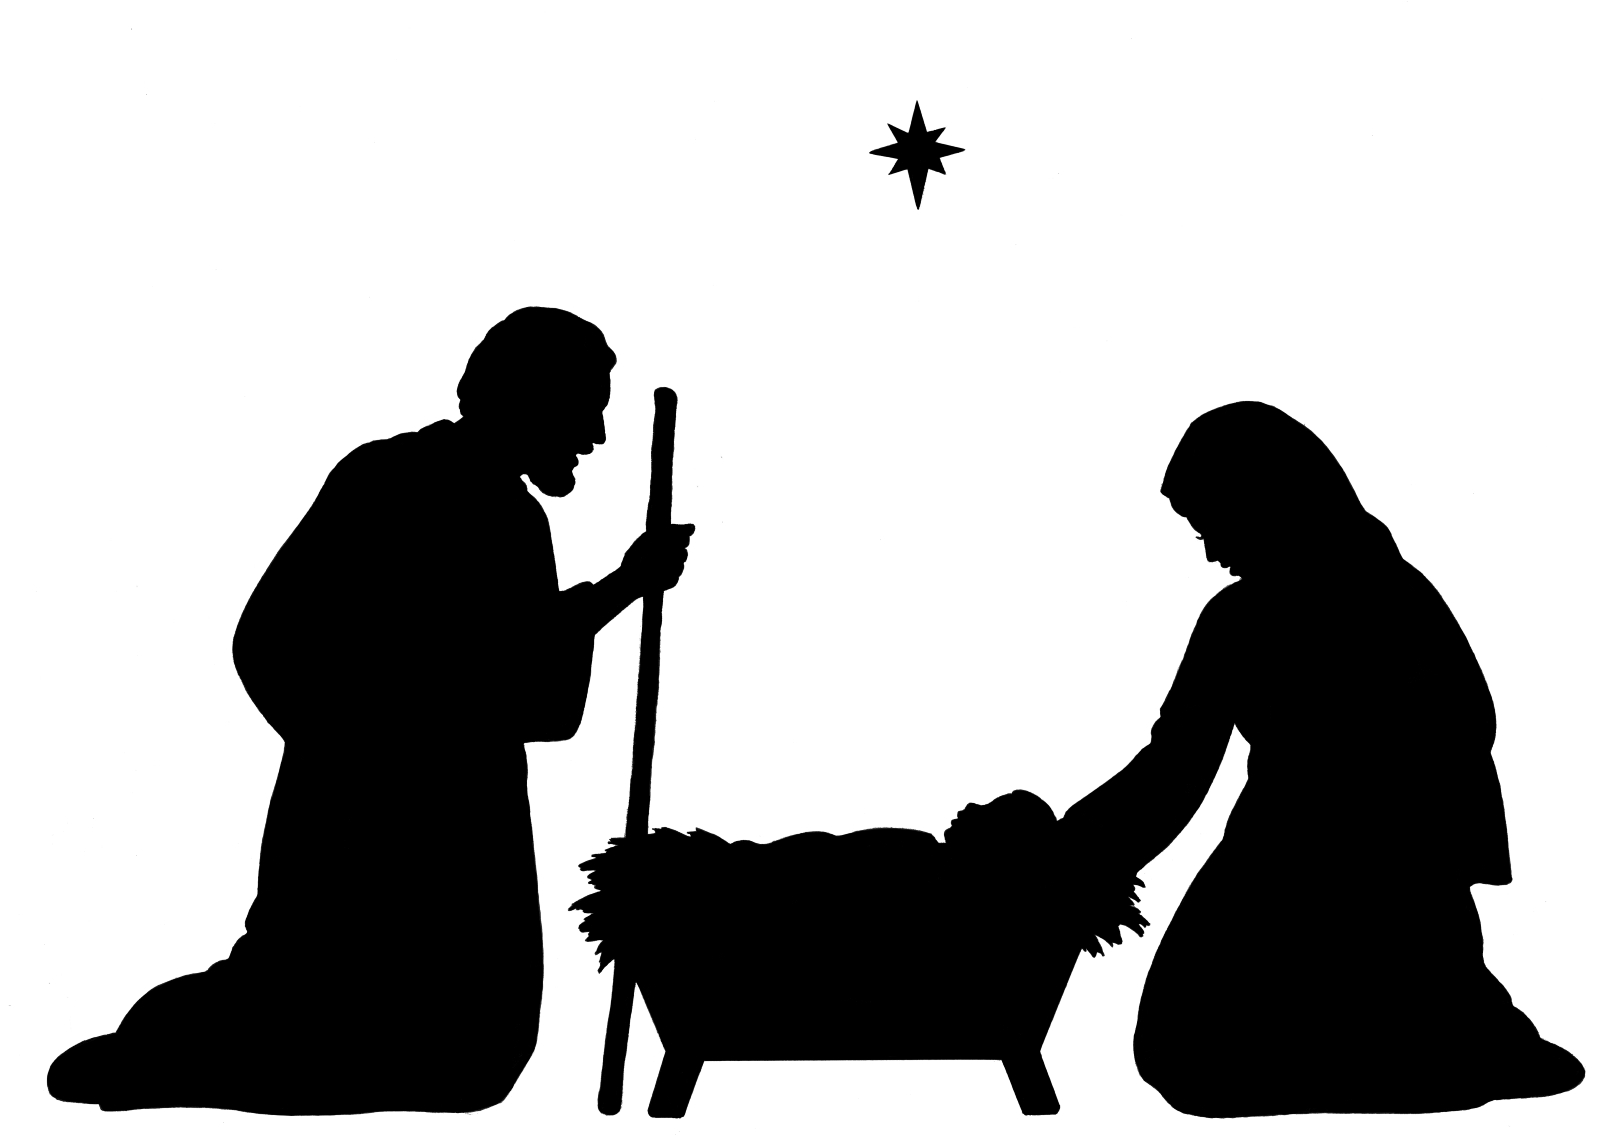 christmas star silhouette at getdrawings com free for personal use